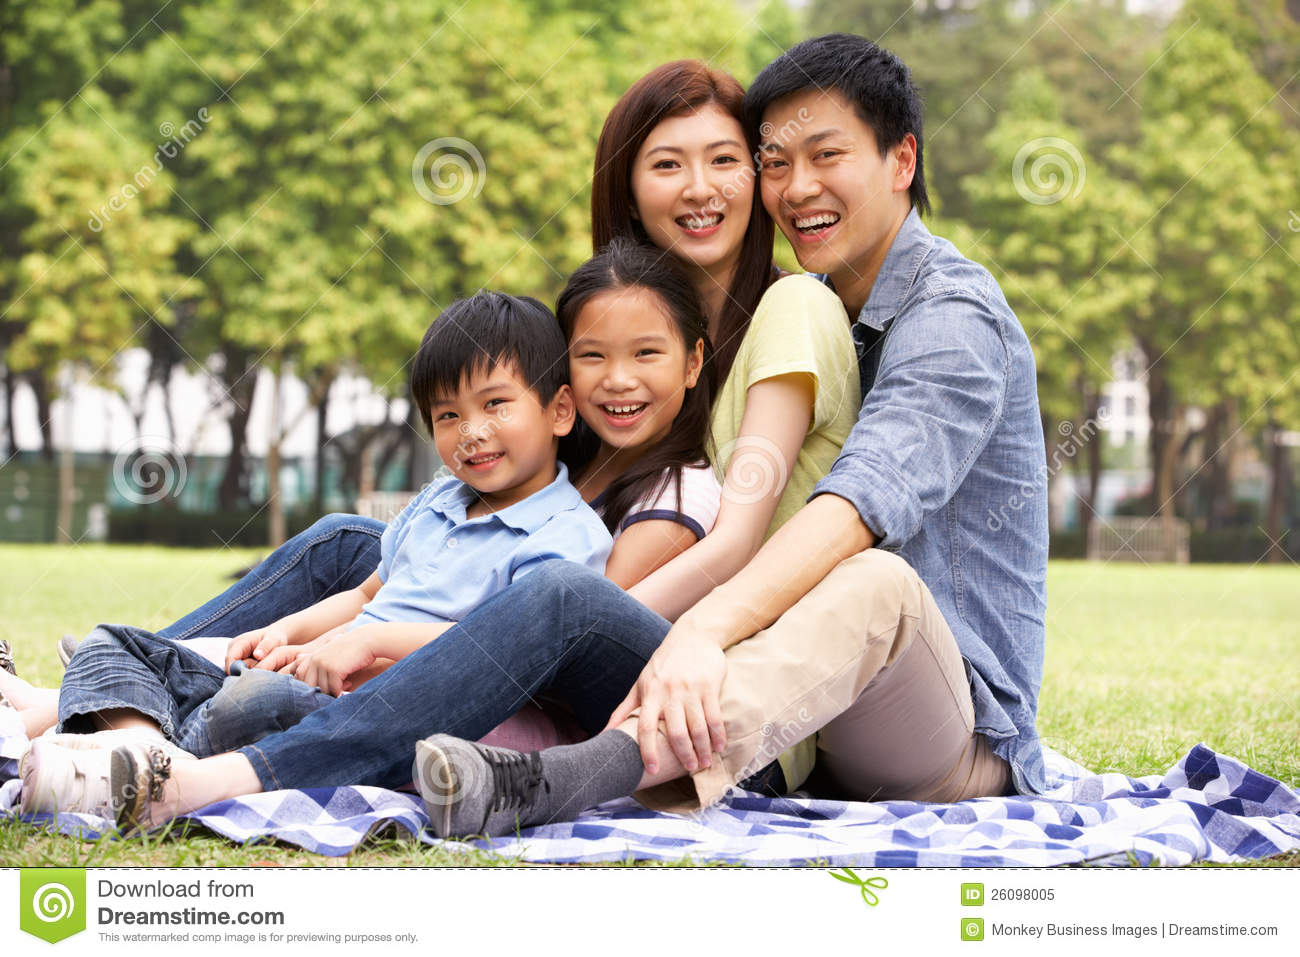 Young Chinese Family Relaxing In Park Together Royalty ...: http://www.dreamstime.com/royalty-free-stock-photo-young-chinese-family-relaxing-park-together-image26098005